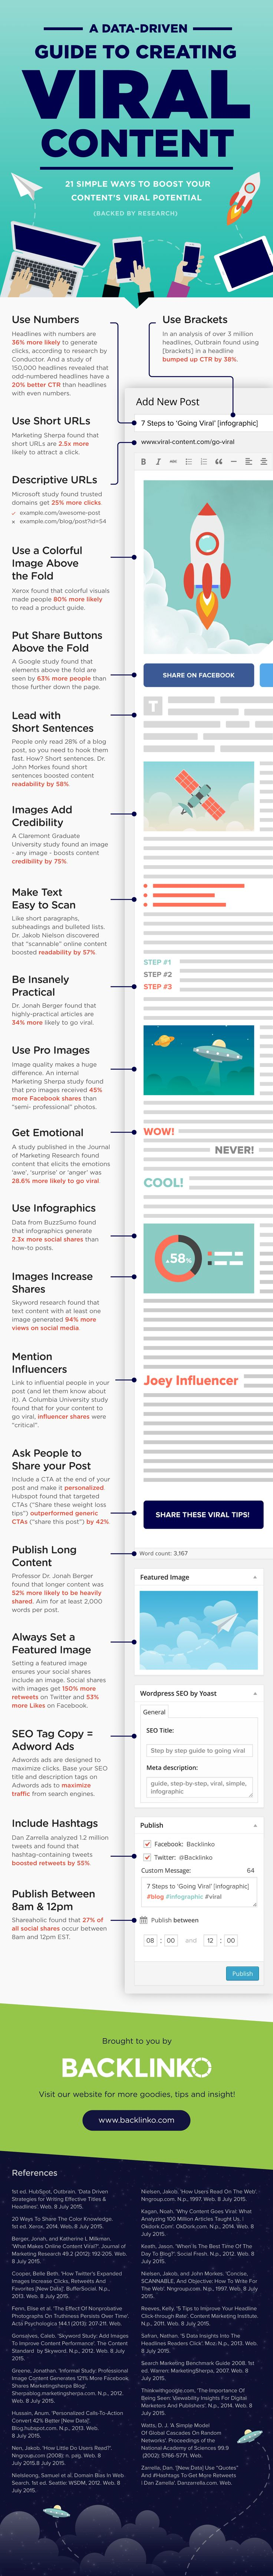 A Data-Driven Guide to Creating Viral Content #Infographic #SocialMedia #Website